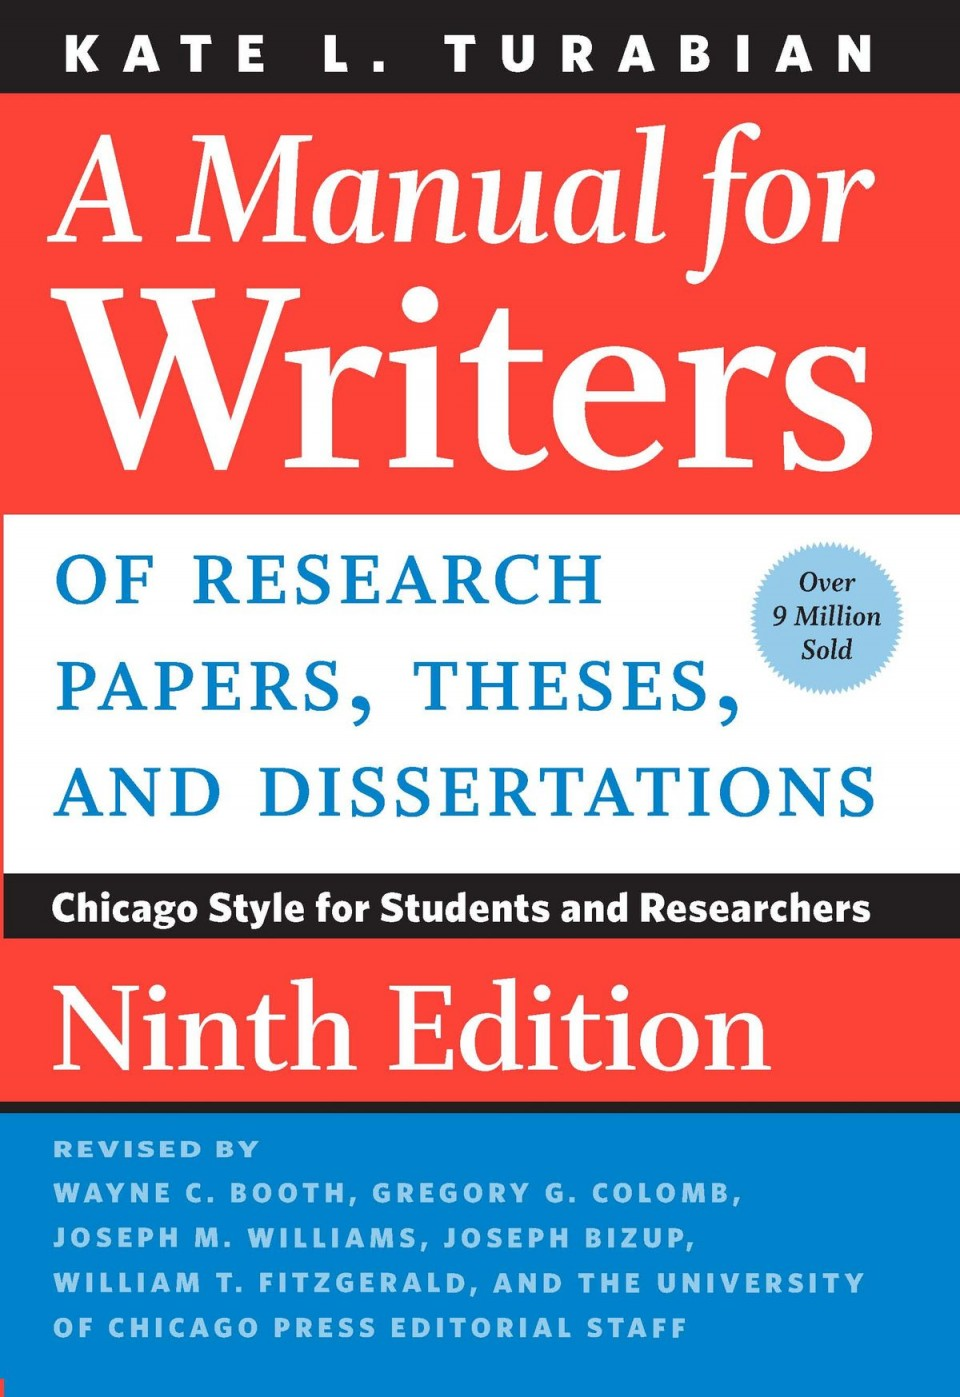 001 Research Paper Manual For Writers Of Papers Theses And Dissertations Turabian Pdf Ninth Wonderful A 960